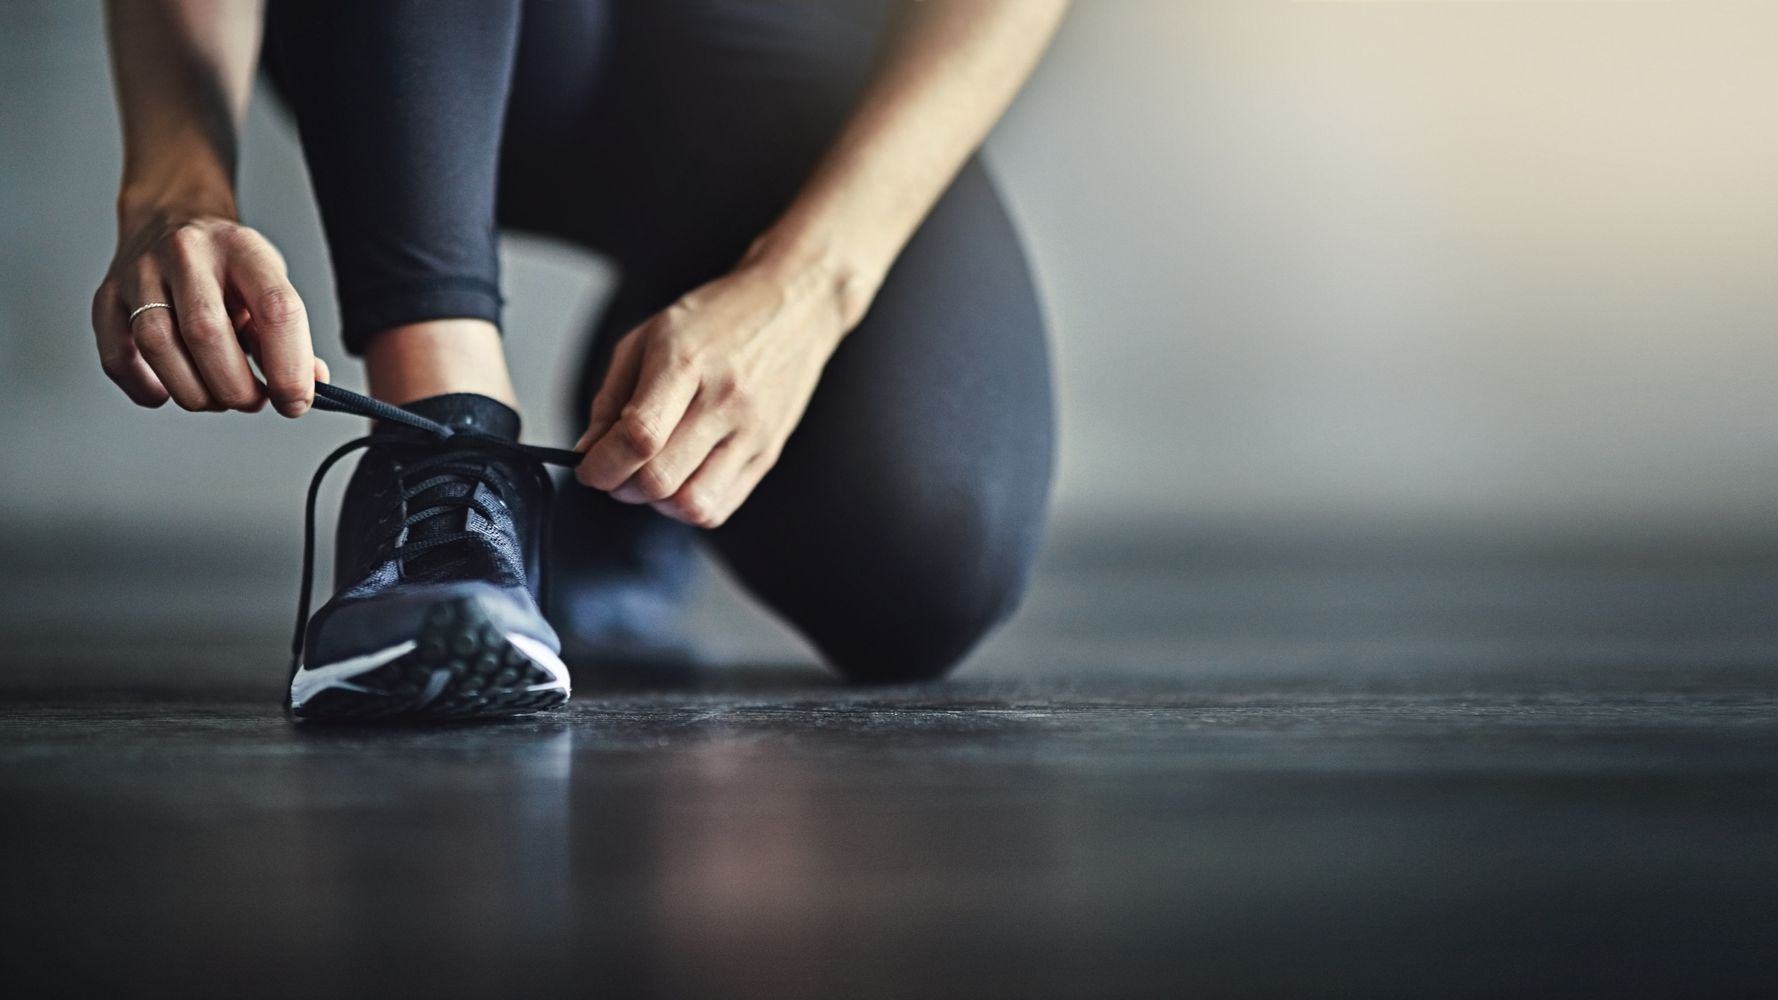 How To Become A Better Runner If You're A Beginner